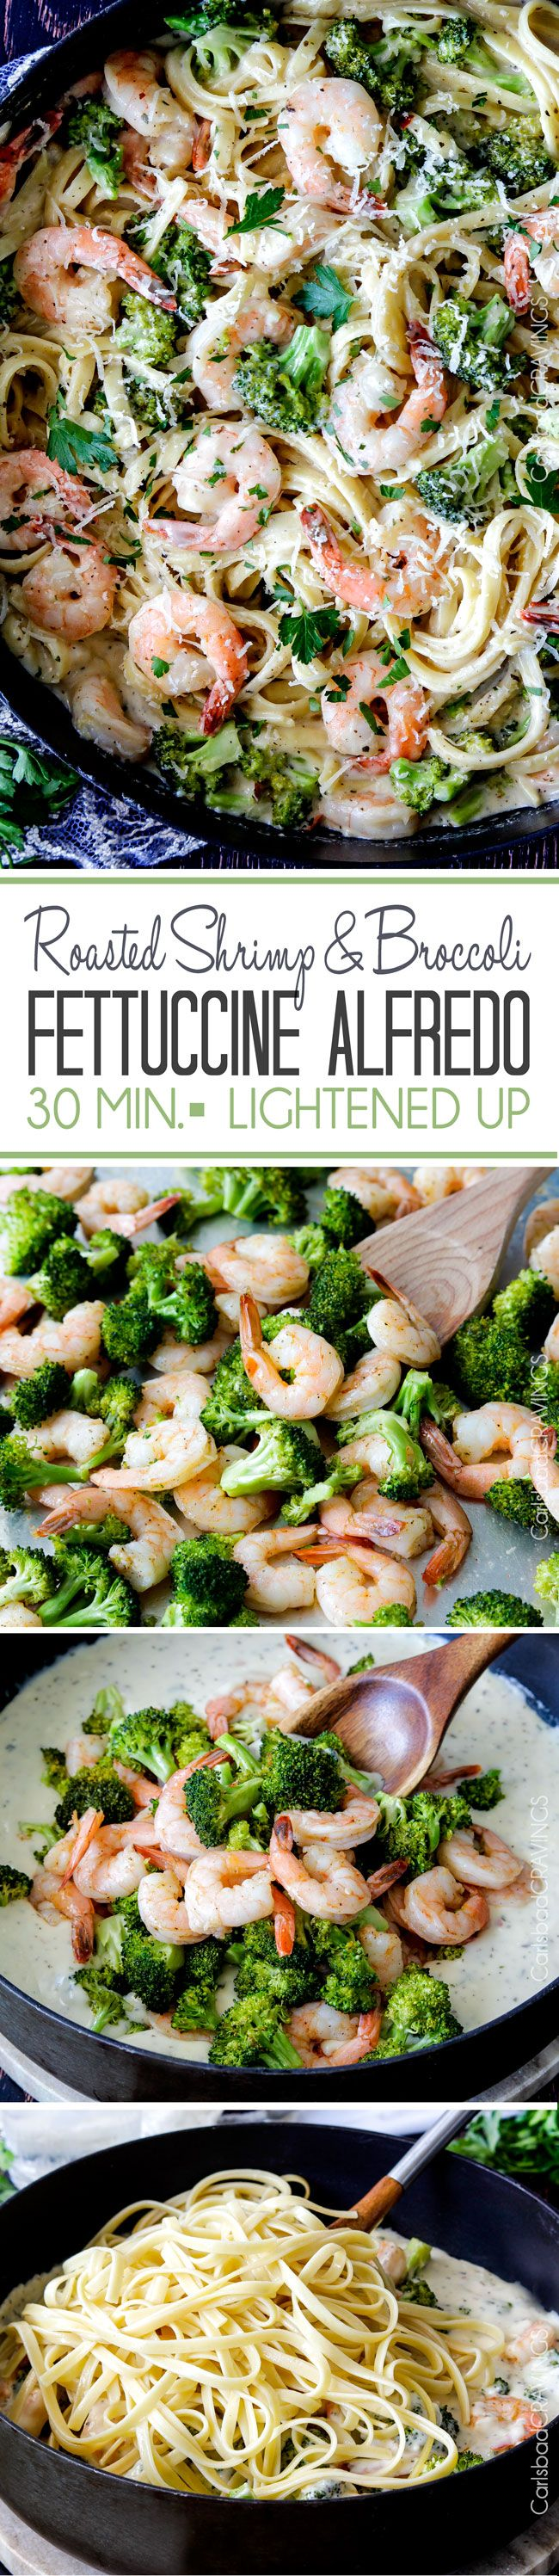 LIGHTENED up 30 Minute Roasted Shrimp and Broccoli in a velvety, creamy Garlic Parmesan Mozzarella Alfredo Sauce